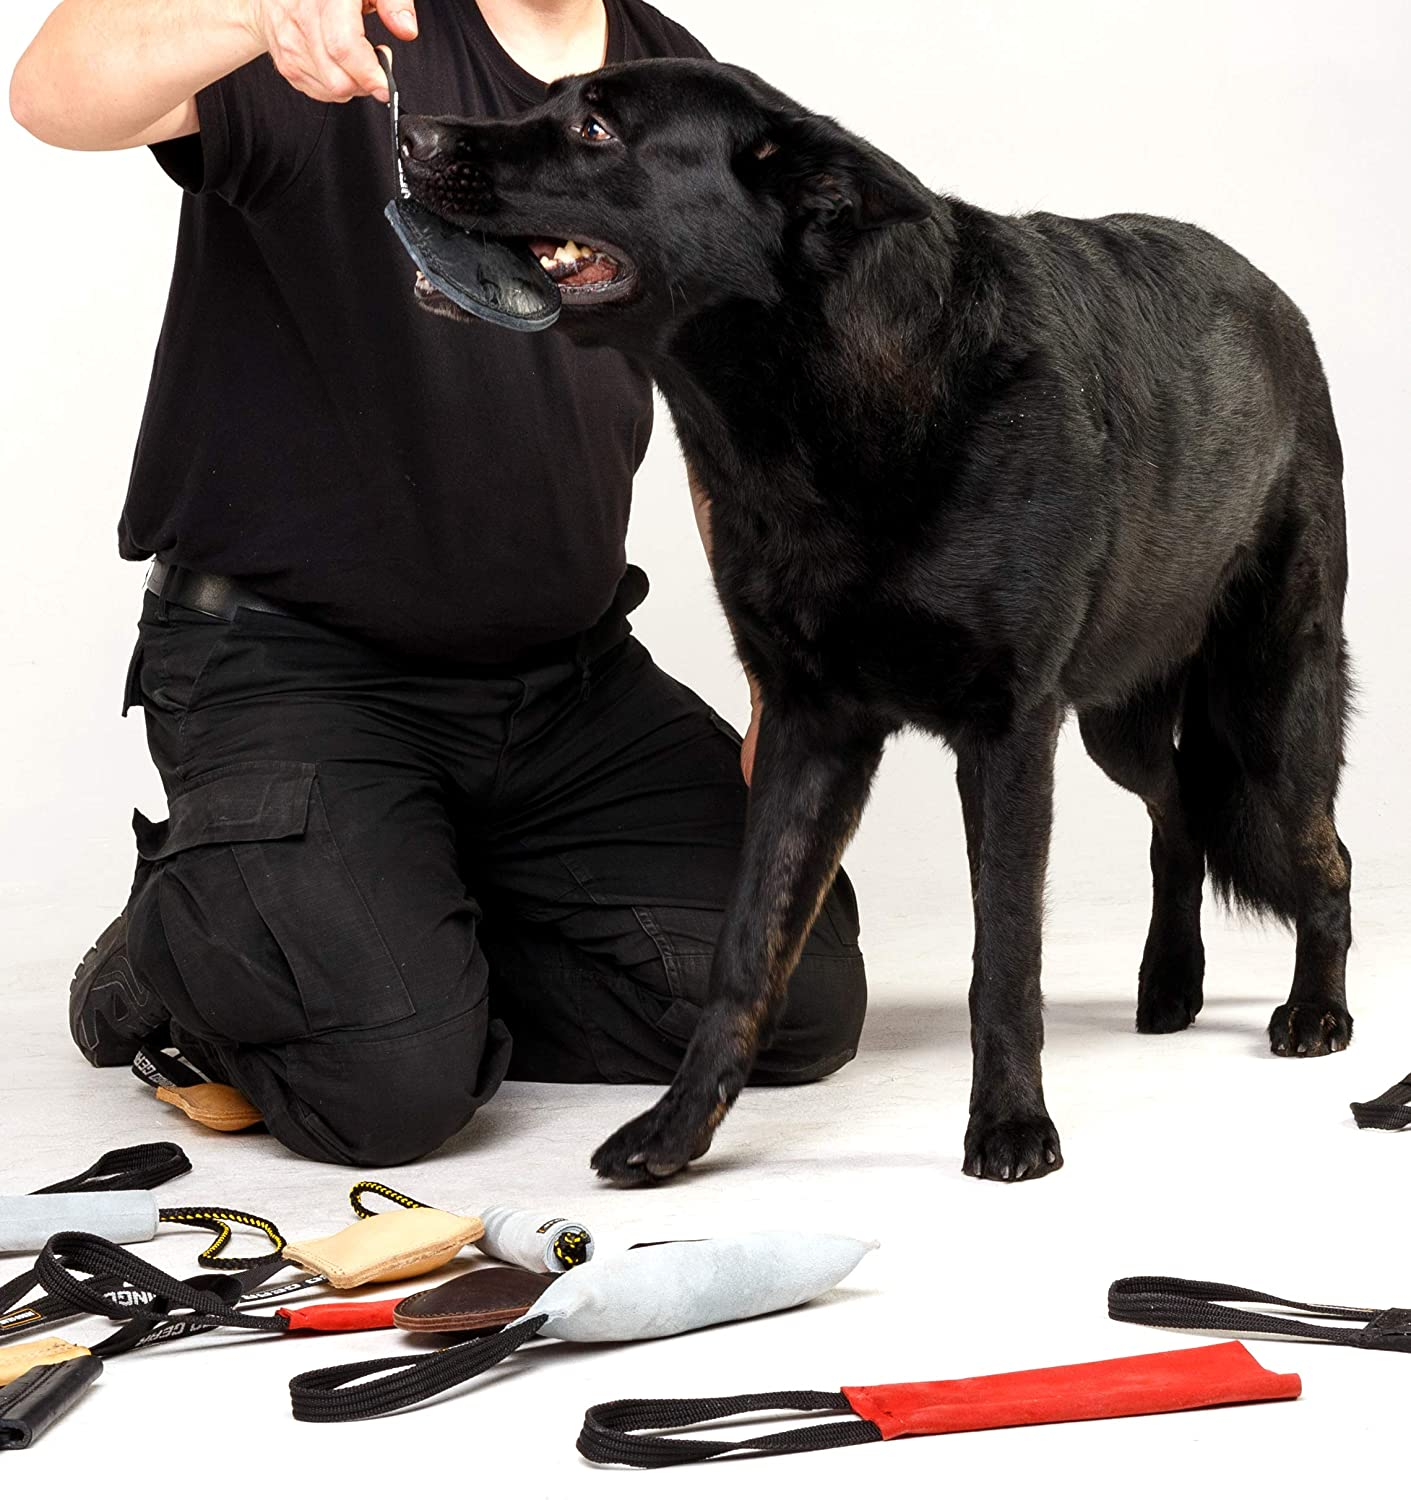 DINGO GEAR Dog Bite Tug Handmade of Black Grain Leather Strong Tug for Bite Training K9 IPO Agility and Just Fun S00232